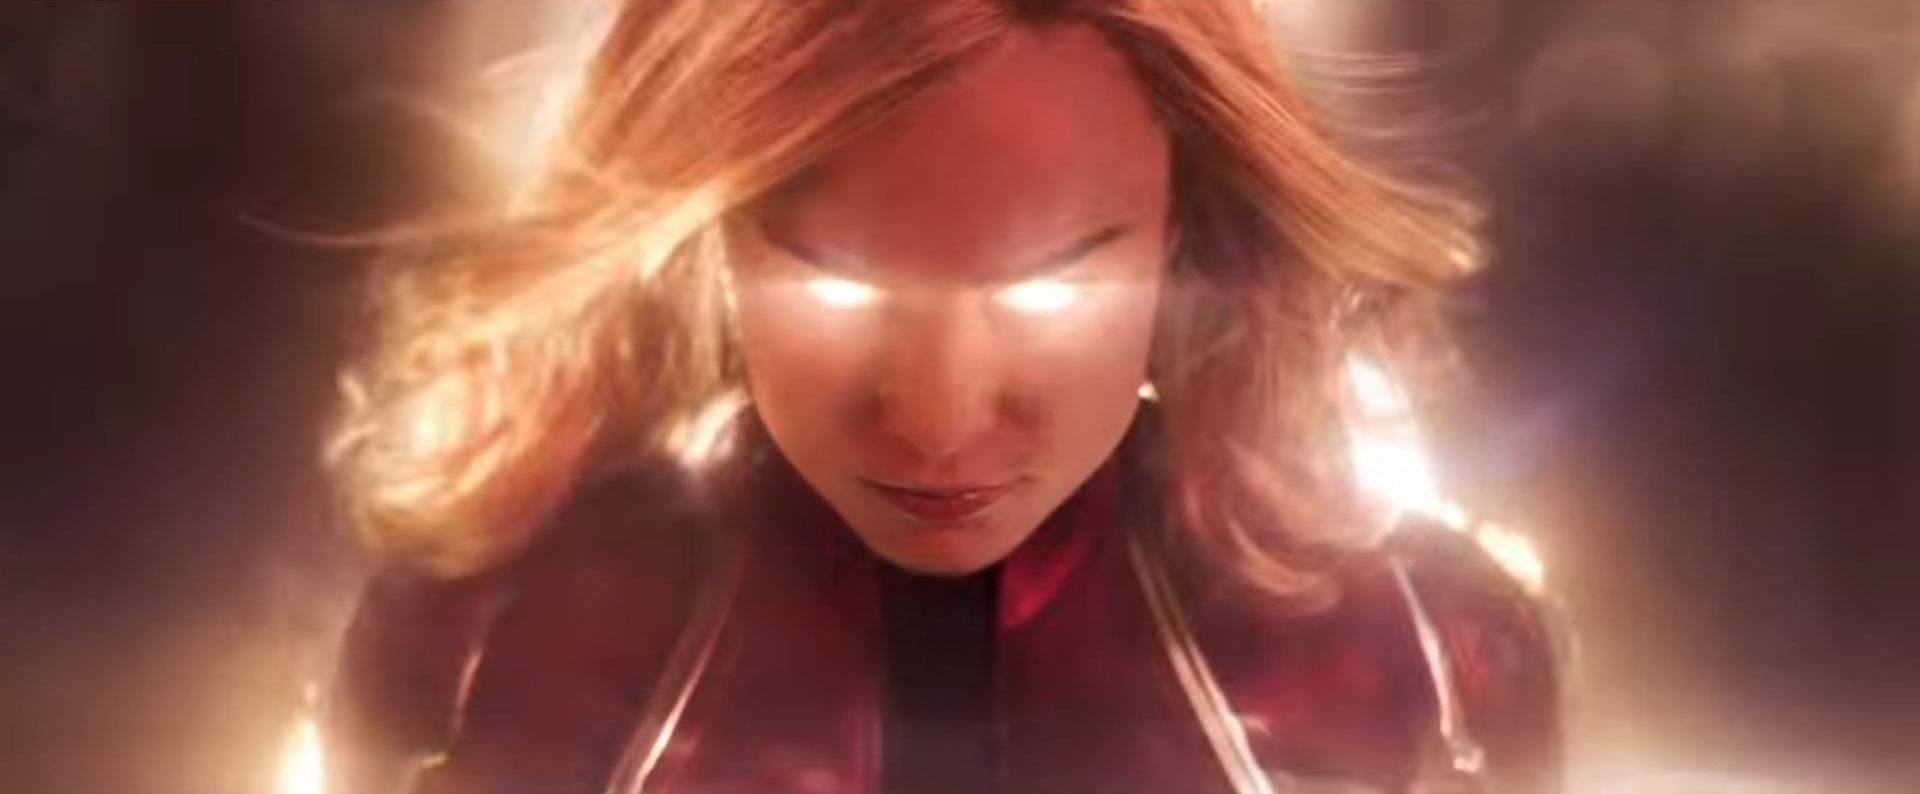 Objavljen novi trailer za 'Captain Marvel'